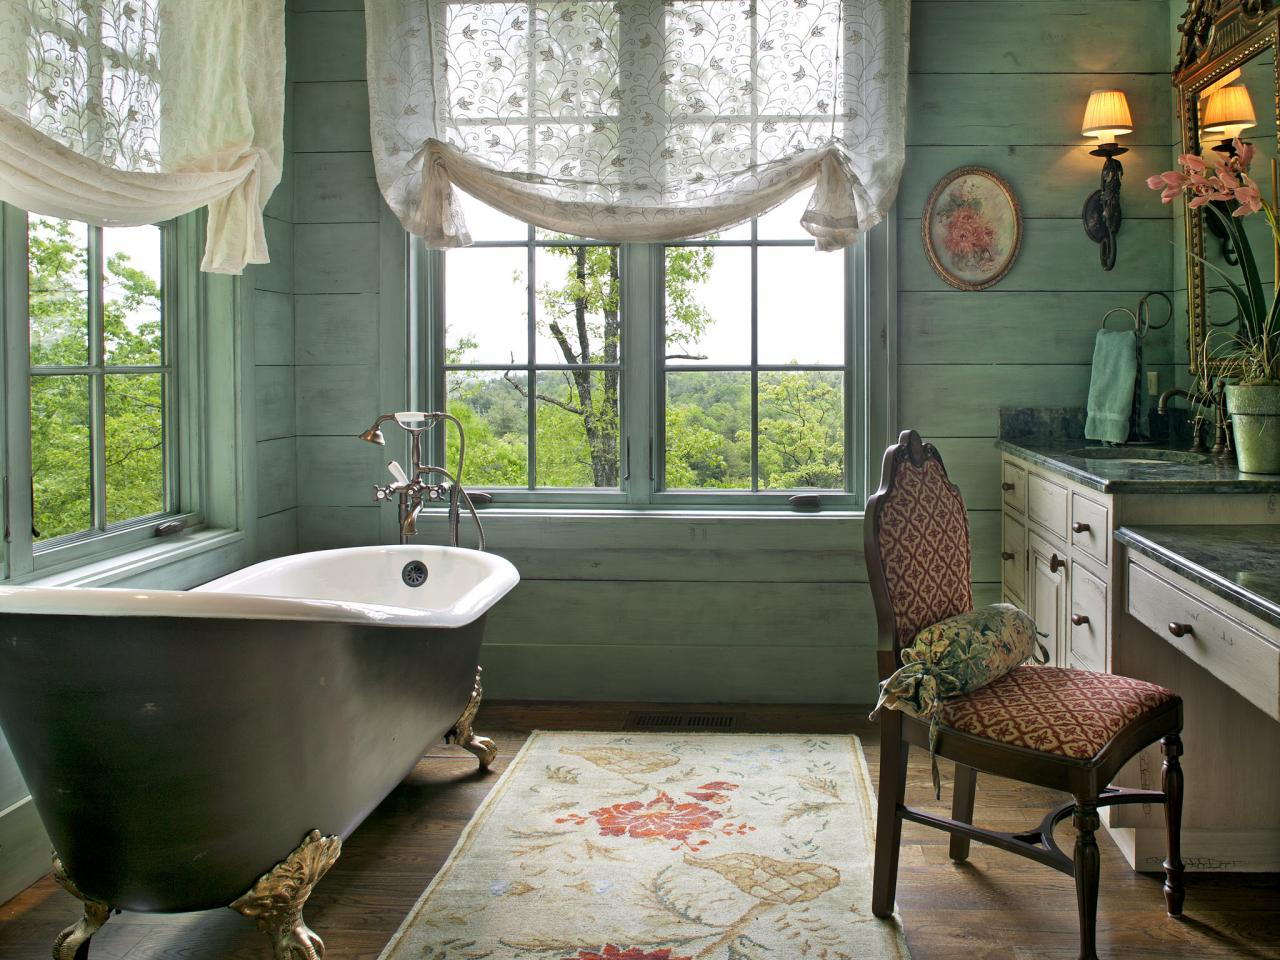 The Most Popular Ideas for Bathroom Curtains   DIY The Most Popular Ideas for Bathroom Curtains